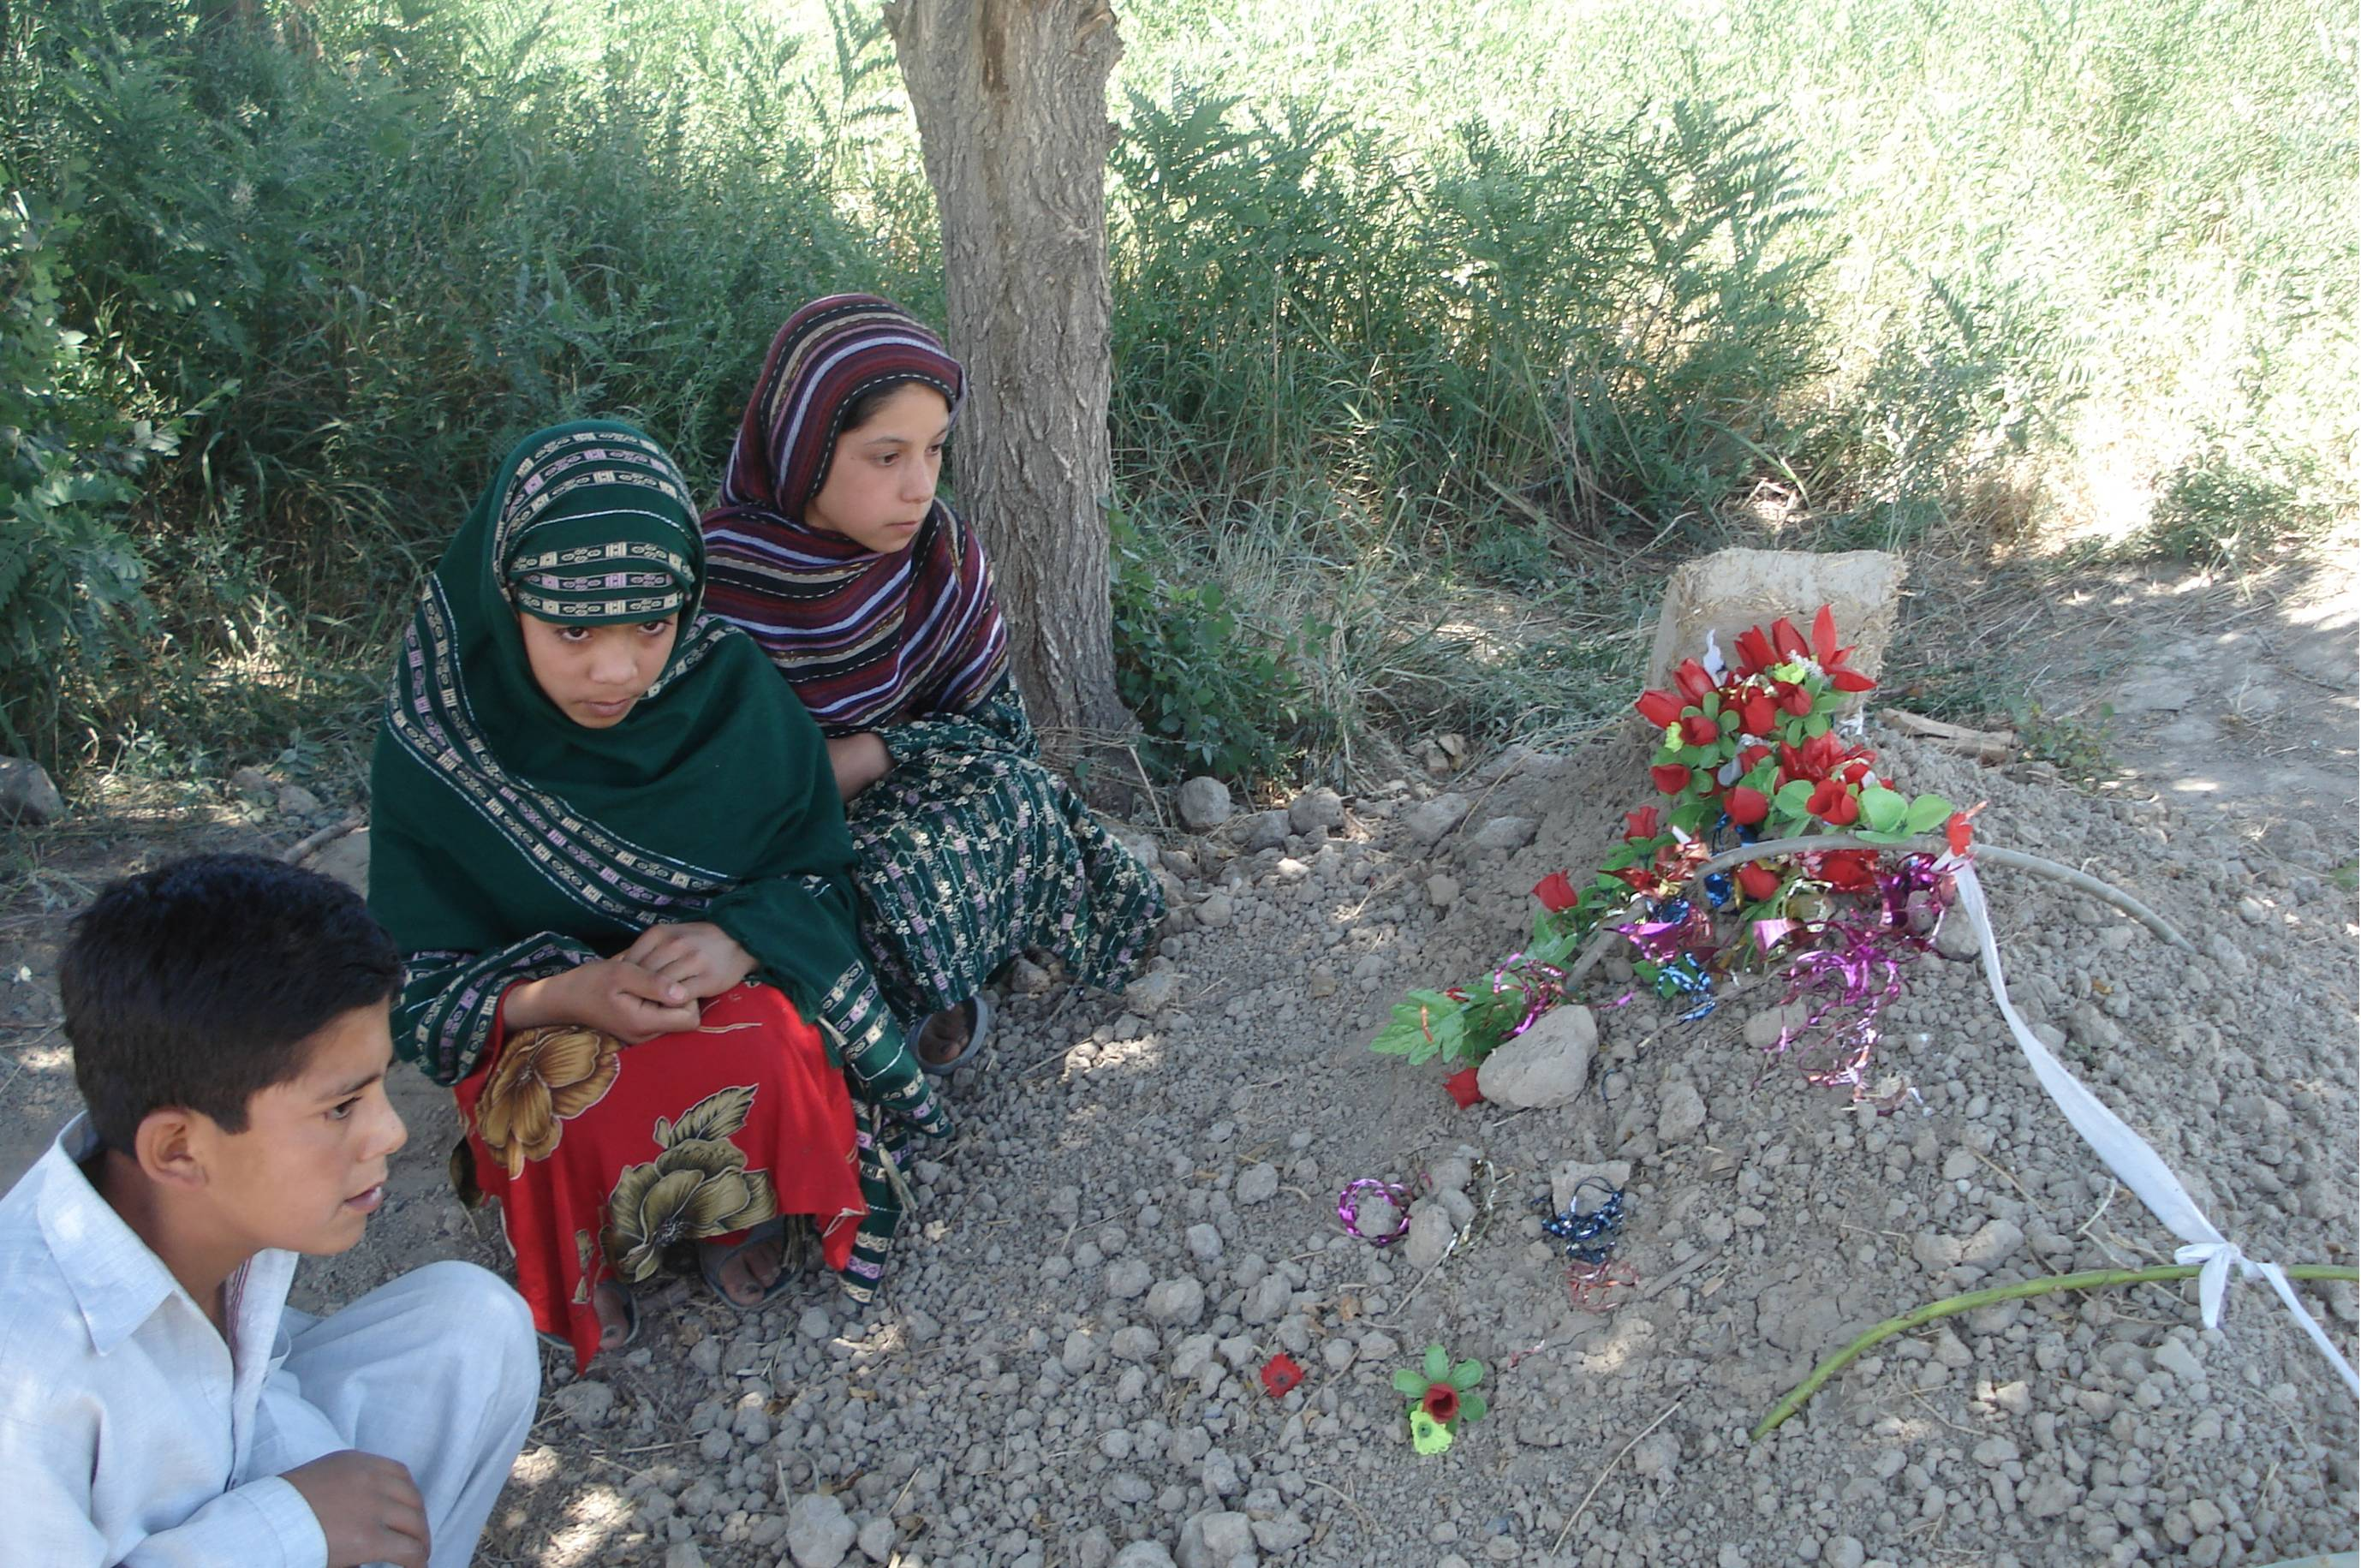 Children pray near the grave of 12-year-old Shukria who was killed in the shooting.